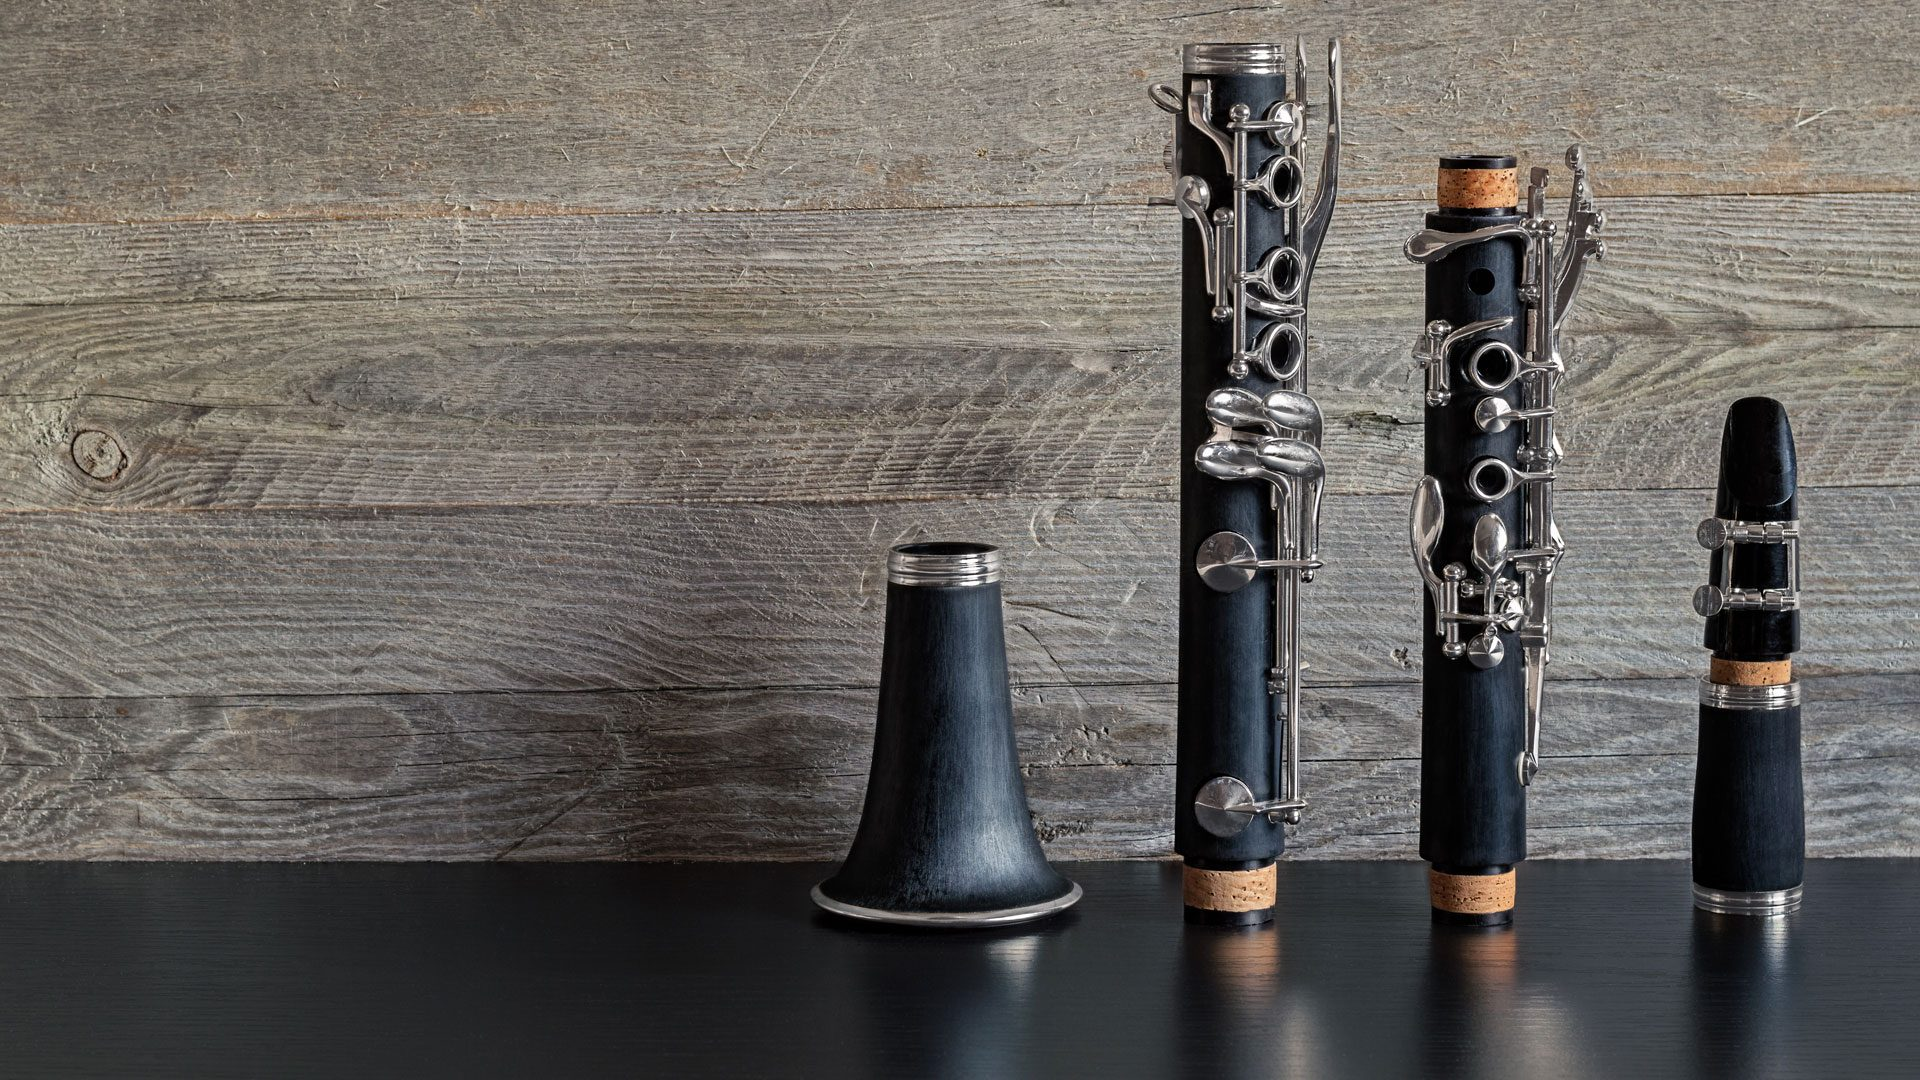 20180921_swam_handcrafted-clarinets-1920x1080